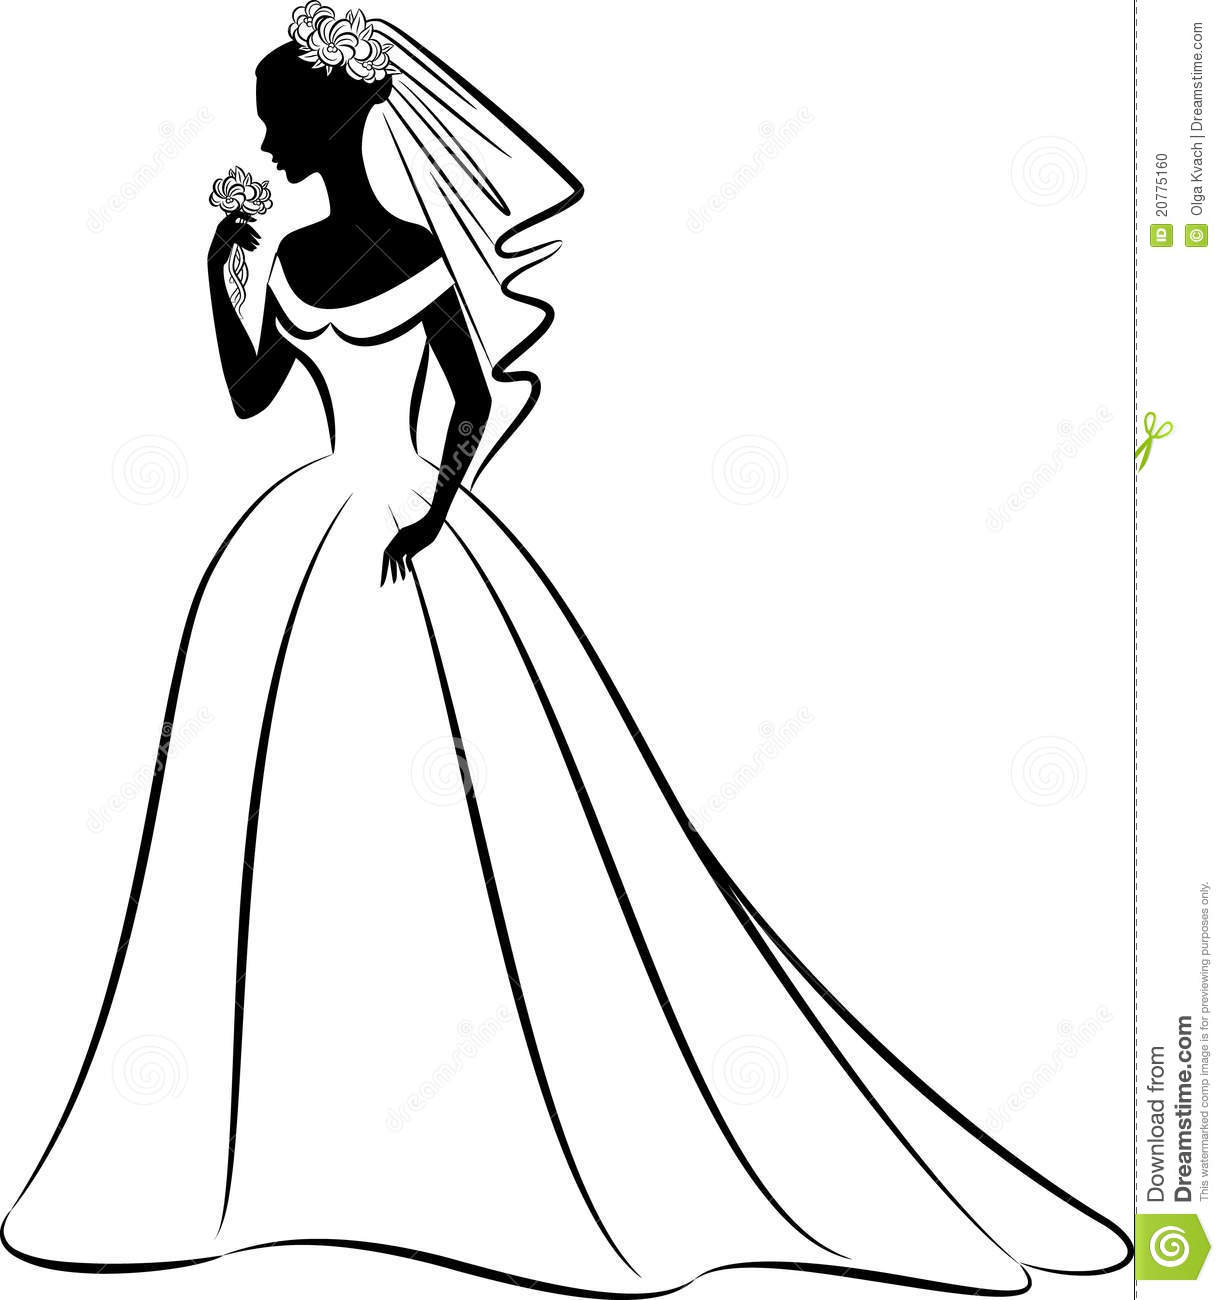 Clipart wedding dress clipart png black and white download Wedding dress clip art - ClipartFest png black and white download